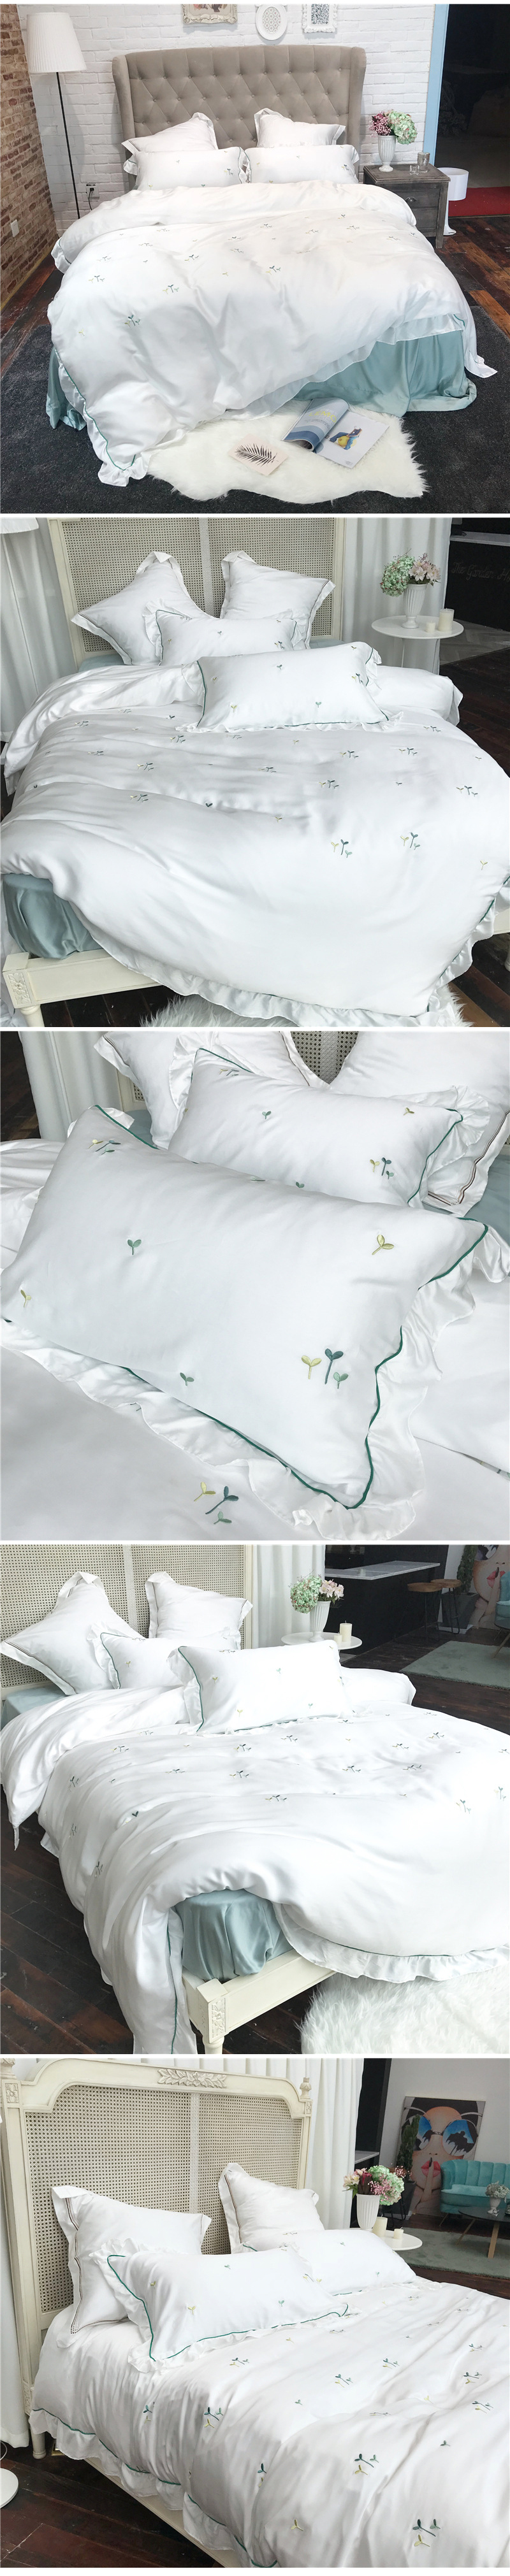 2018 comforter bedding sets 60s tencel coon coon bed sheets small fresh embroidery wedding bed cover housse de couee 3